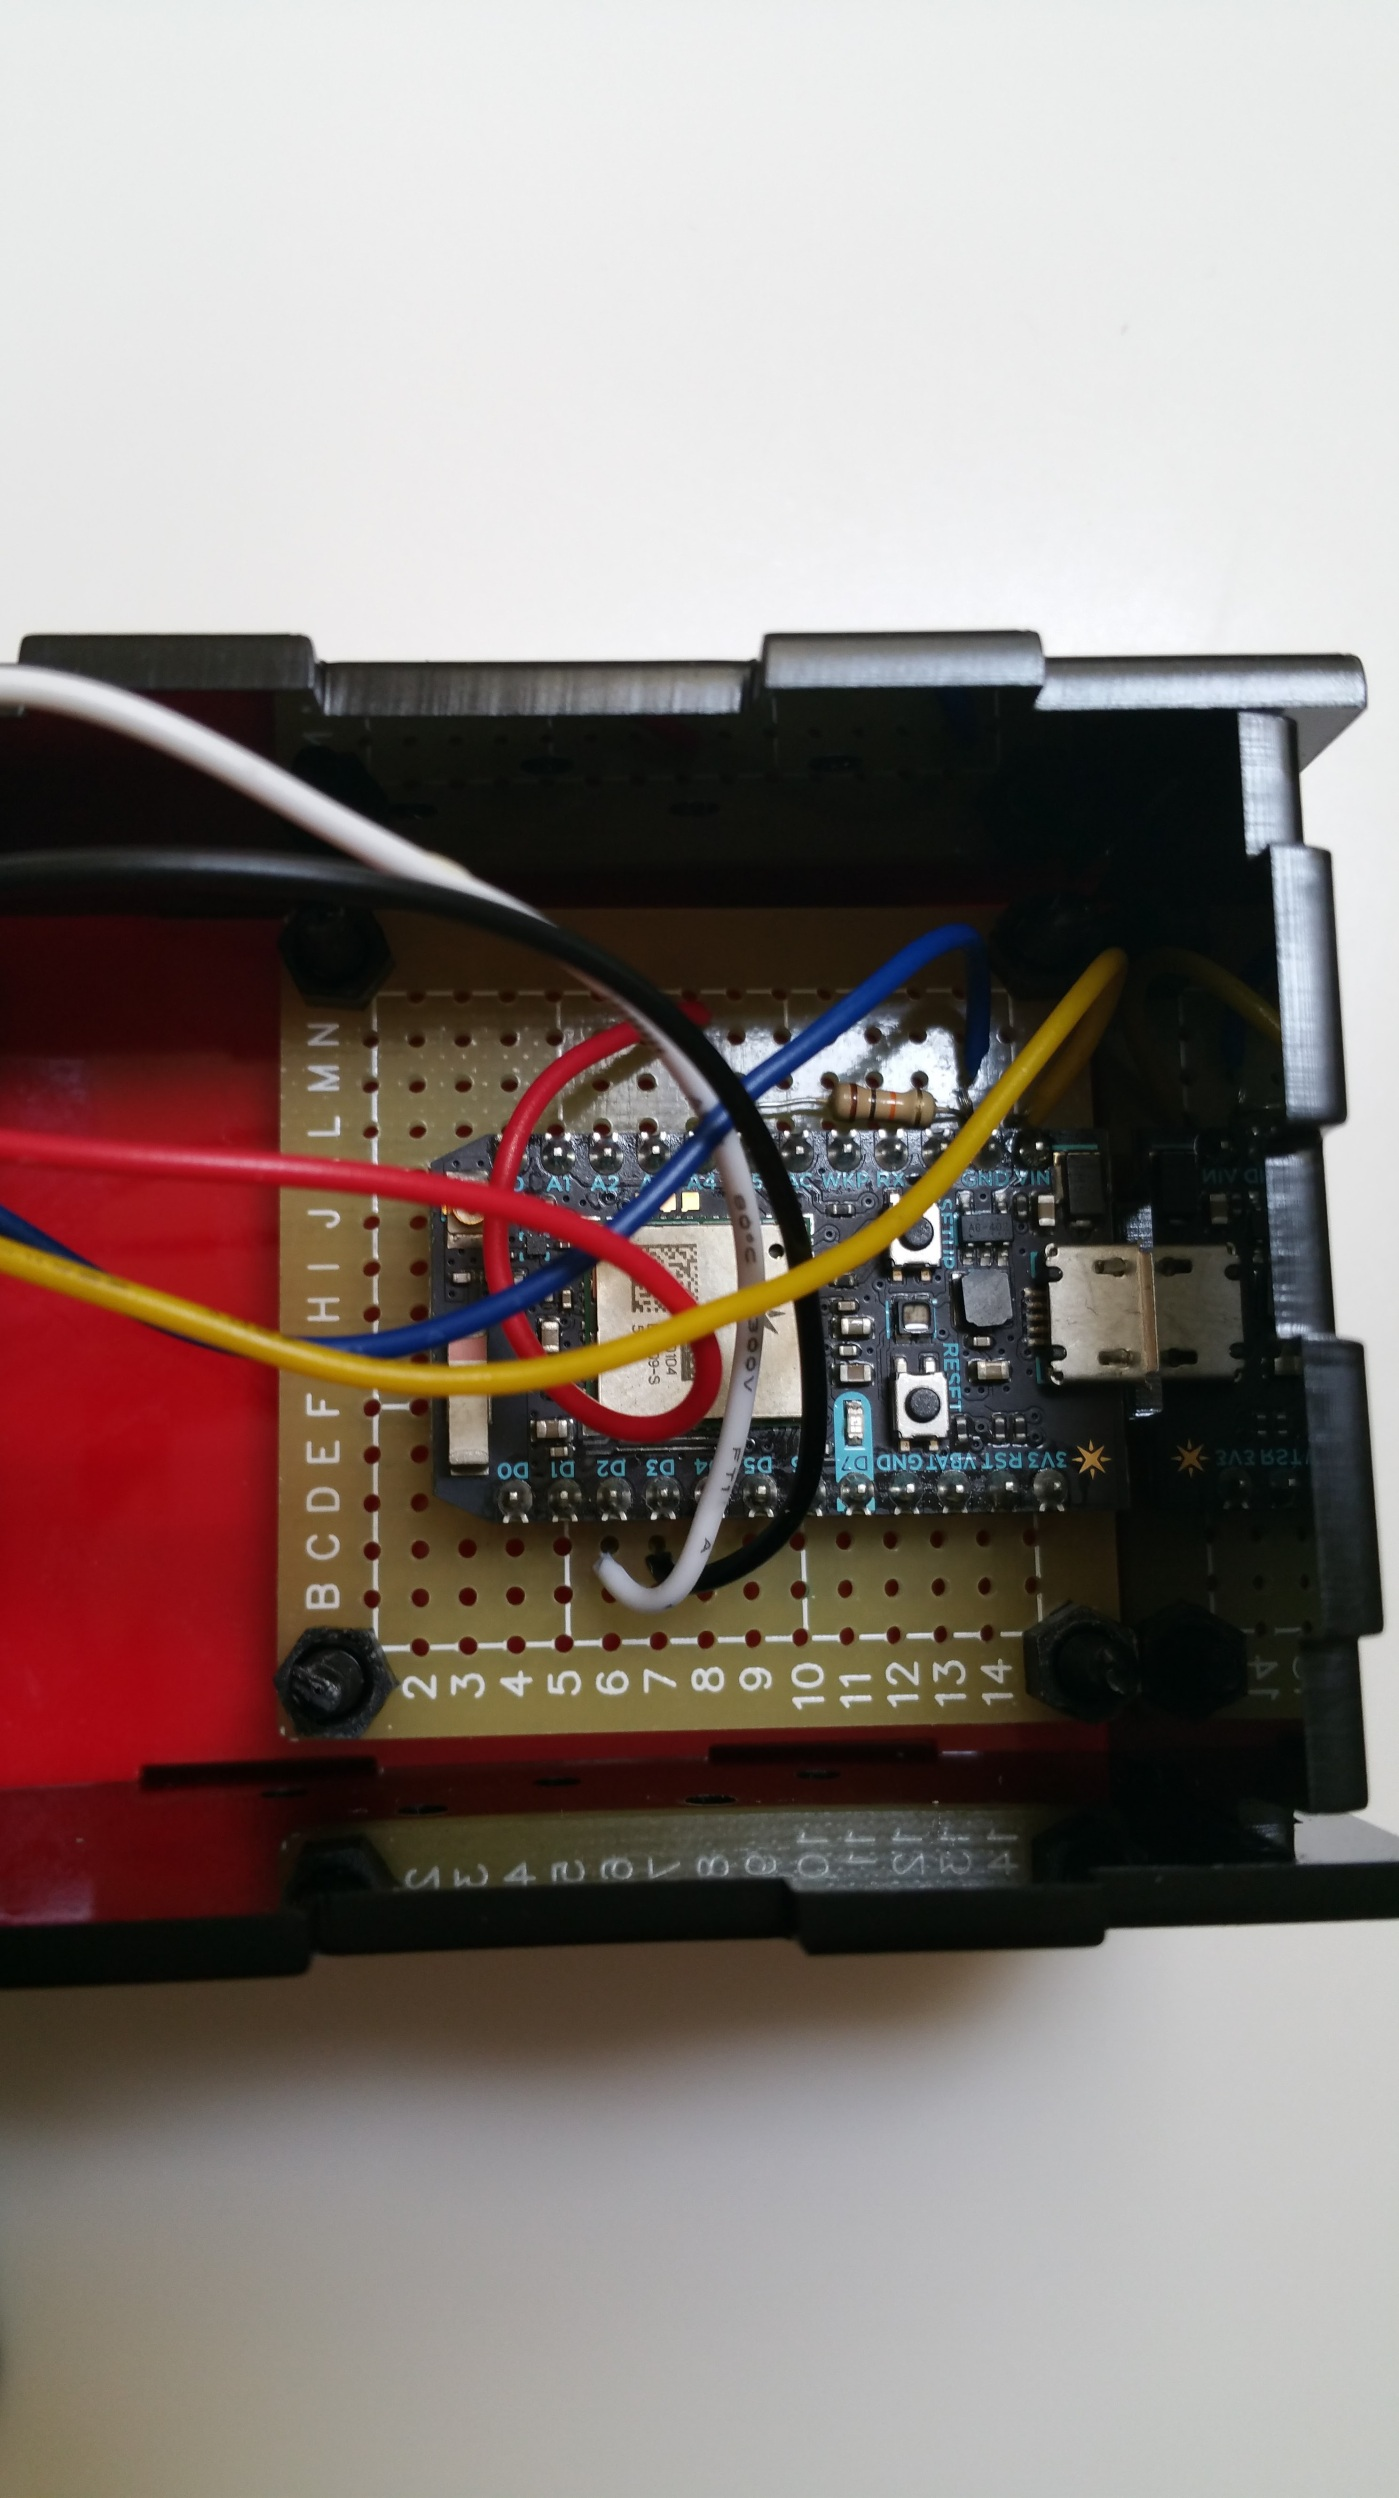 More Pickle Jr  monitors using the PPD42 | indiaairquality